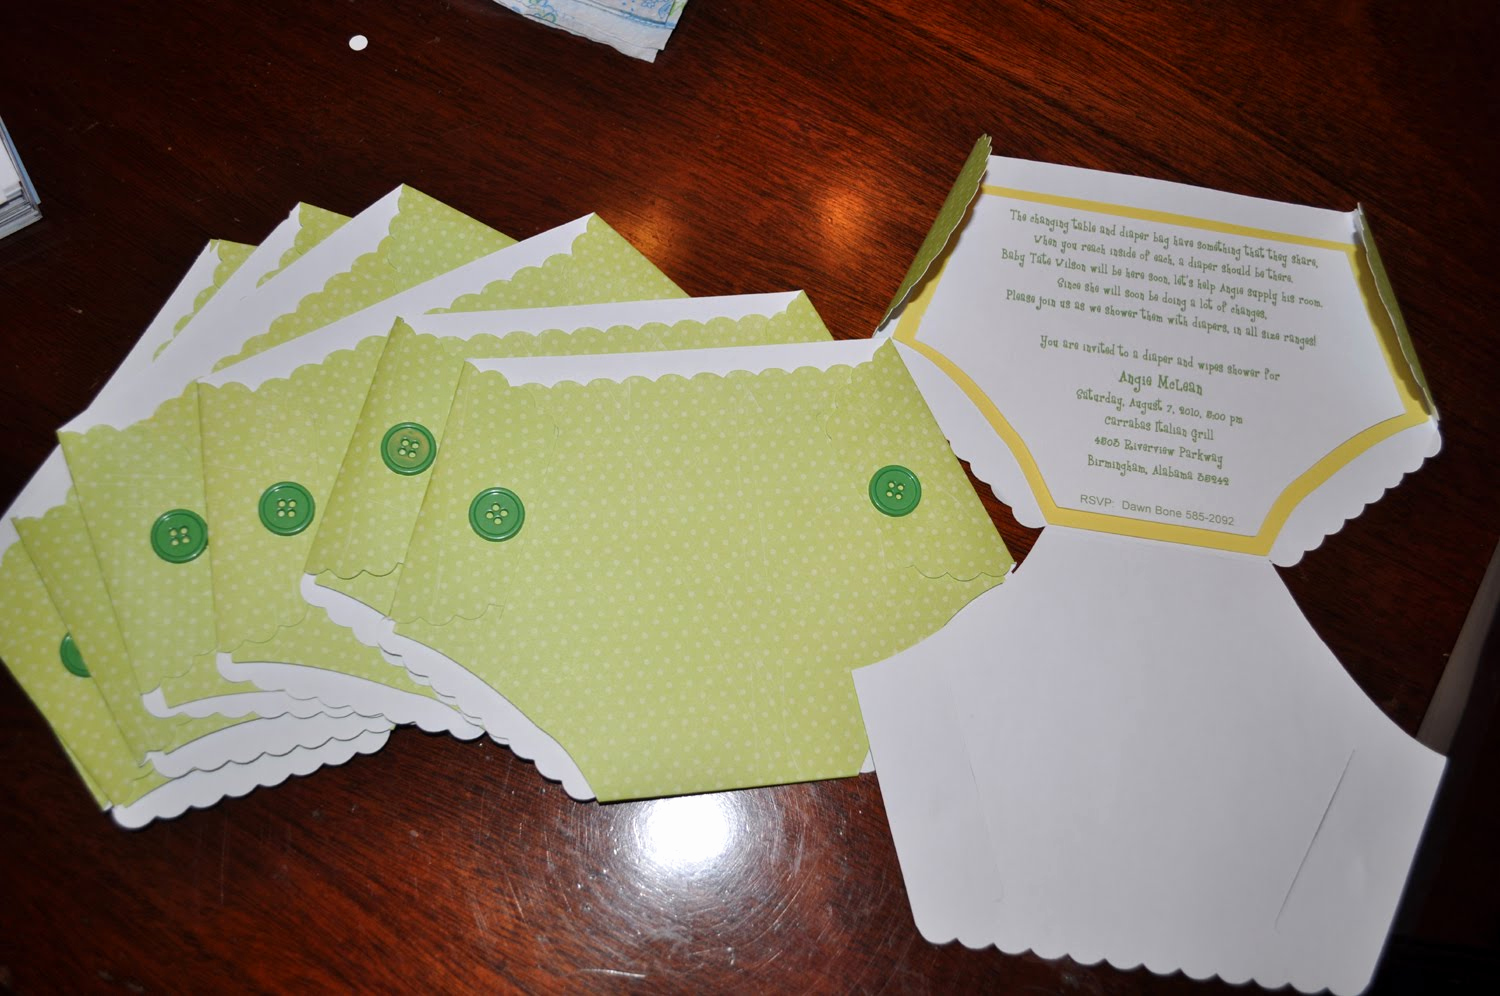 Cricut Baby Shower Invitation Ideas New About to Hatch Baby Shower Invitation Pinterest